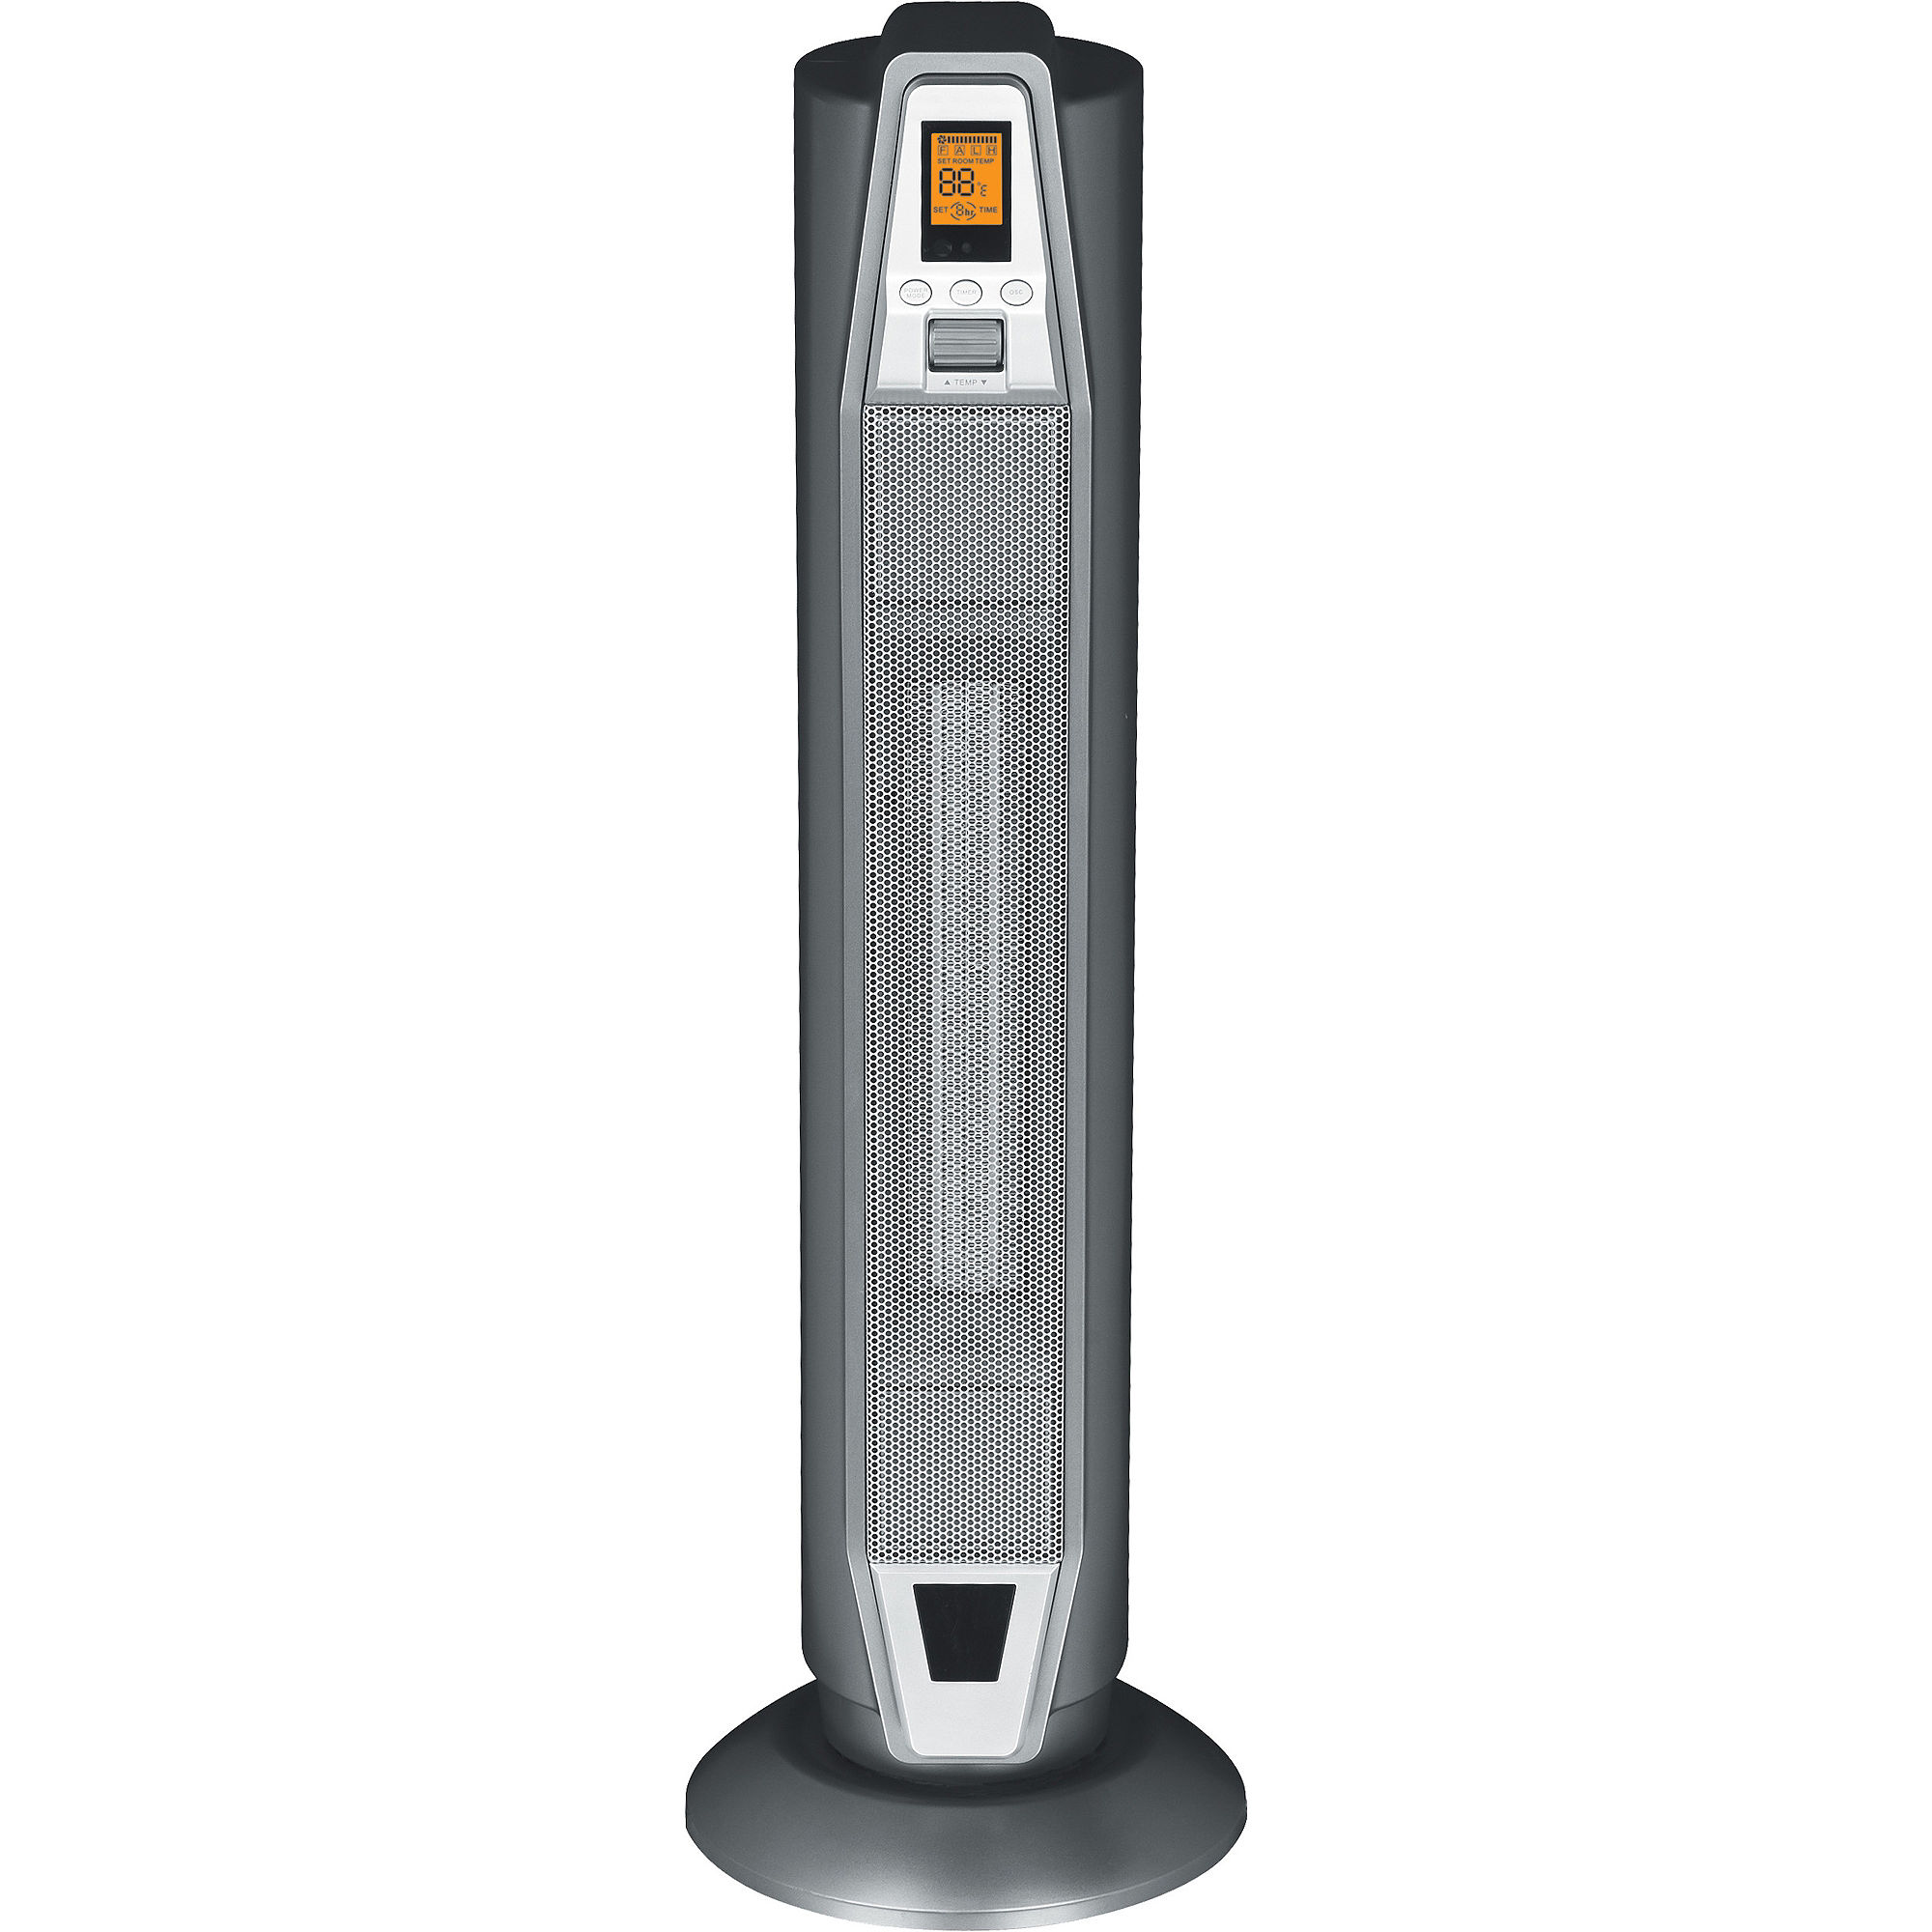 SPT SH-1960B: Tower Ceramic Heater with Thermostat